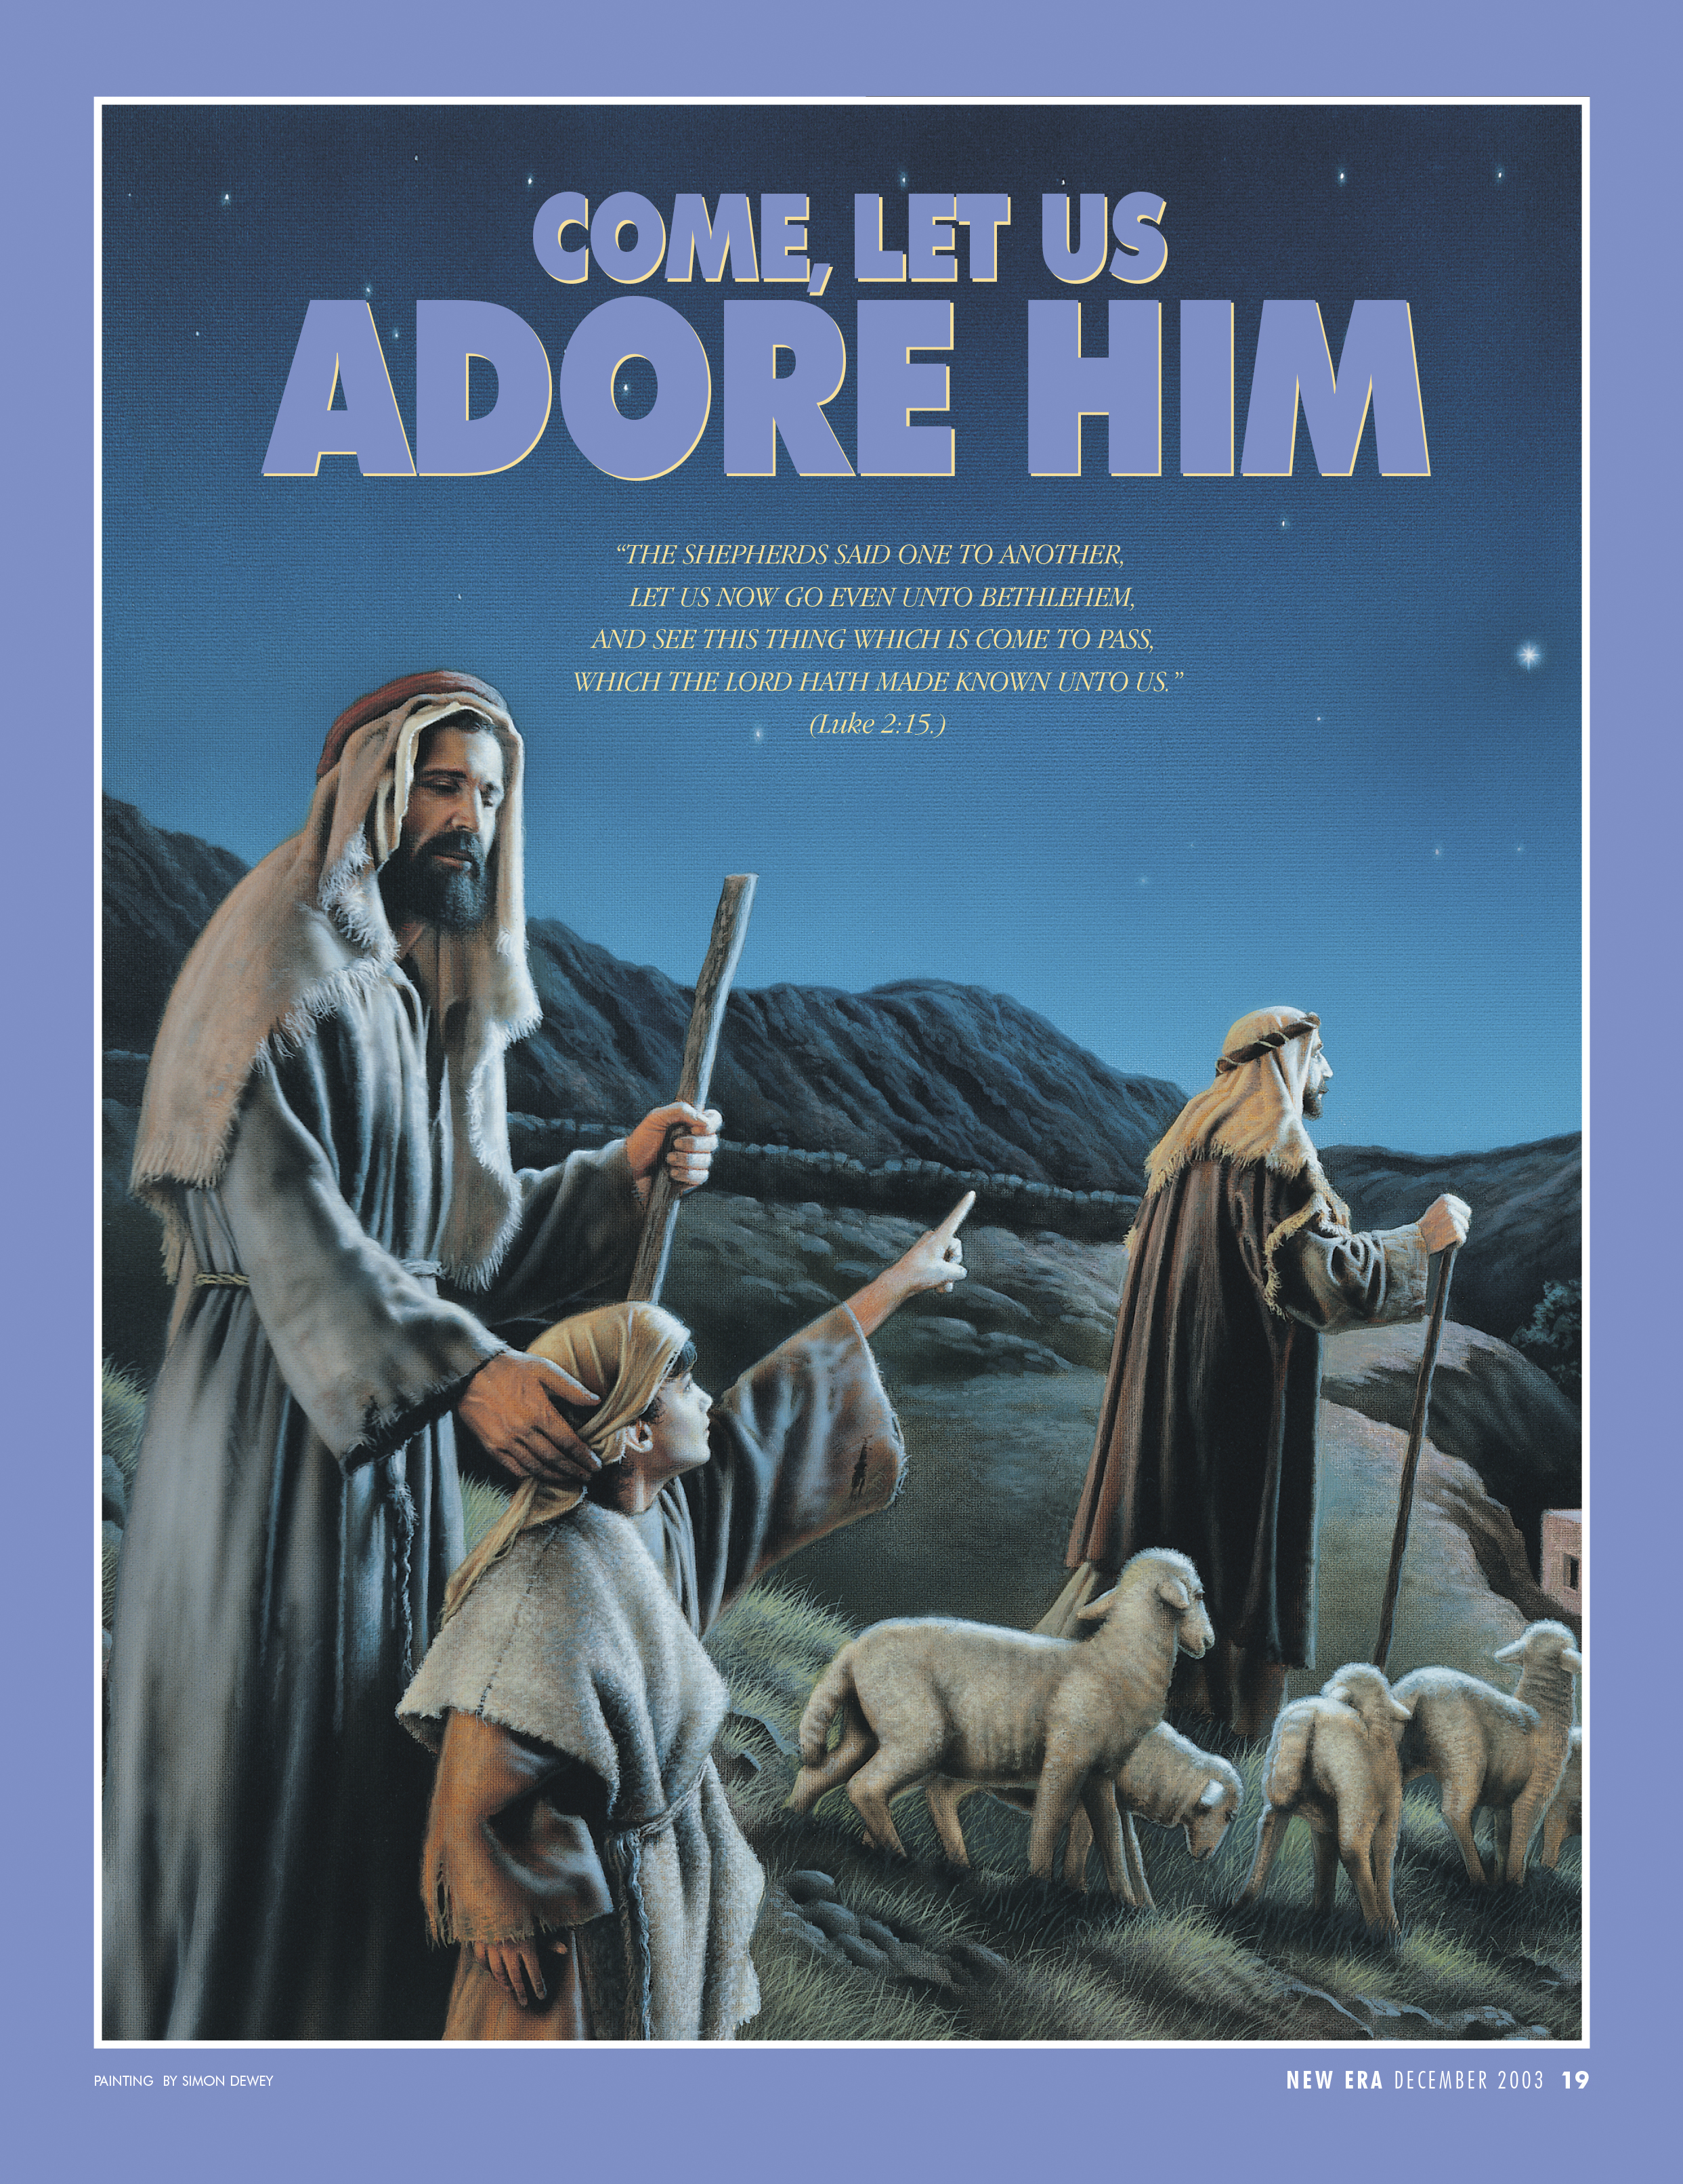 """Come, Let Us Adore Him. """"The shepherds said one to another, Let us now go even unto Bethlehem, and see this thing which is come to pass, which the Lord hath made known unto us."""" (Luke 2:15.) Dec. 2003 © undefined ipCode 1."""